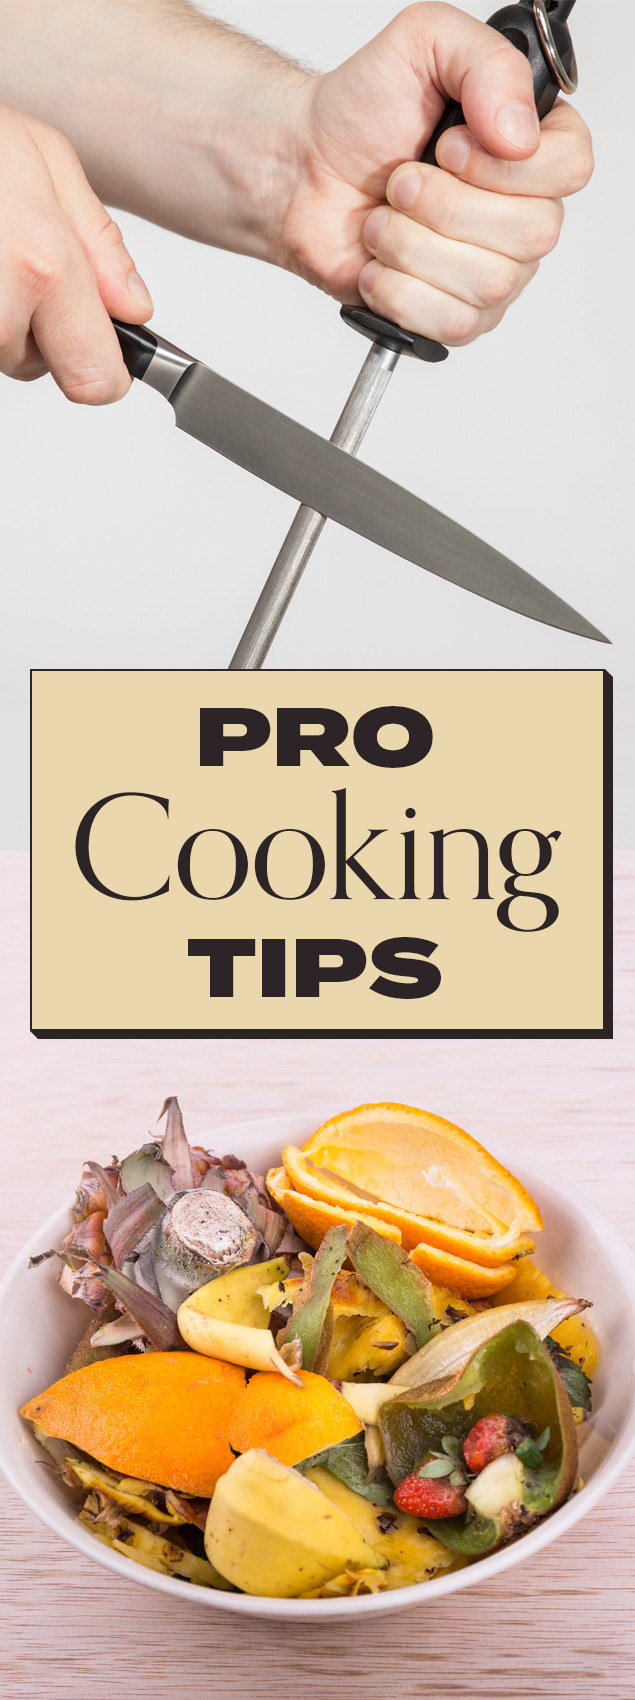 Forum on this topic: 26 Cooking Tricks to Steal from the , 26-cooking-tricks-to-steal-from-the/